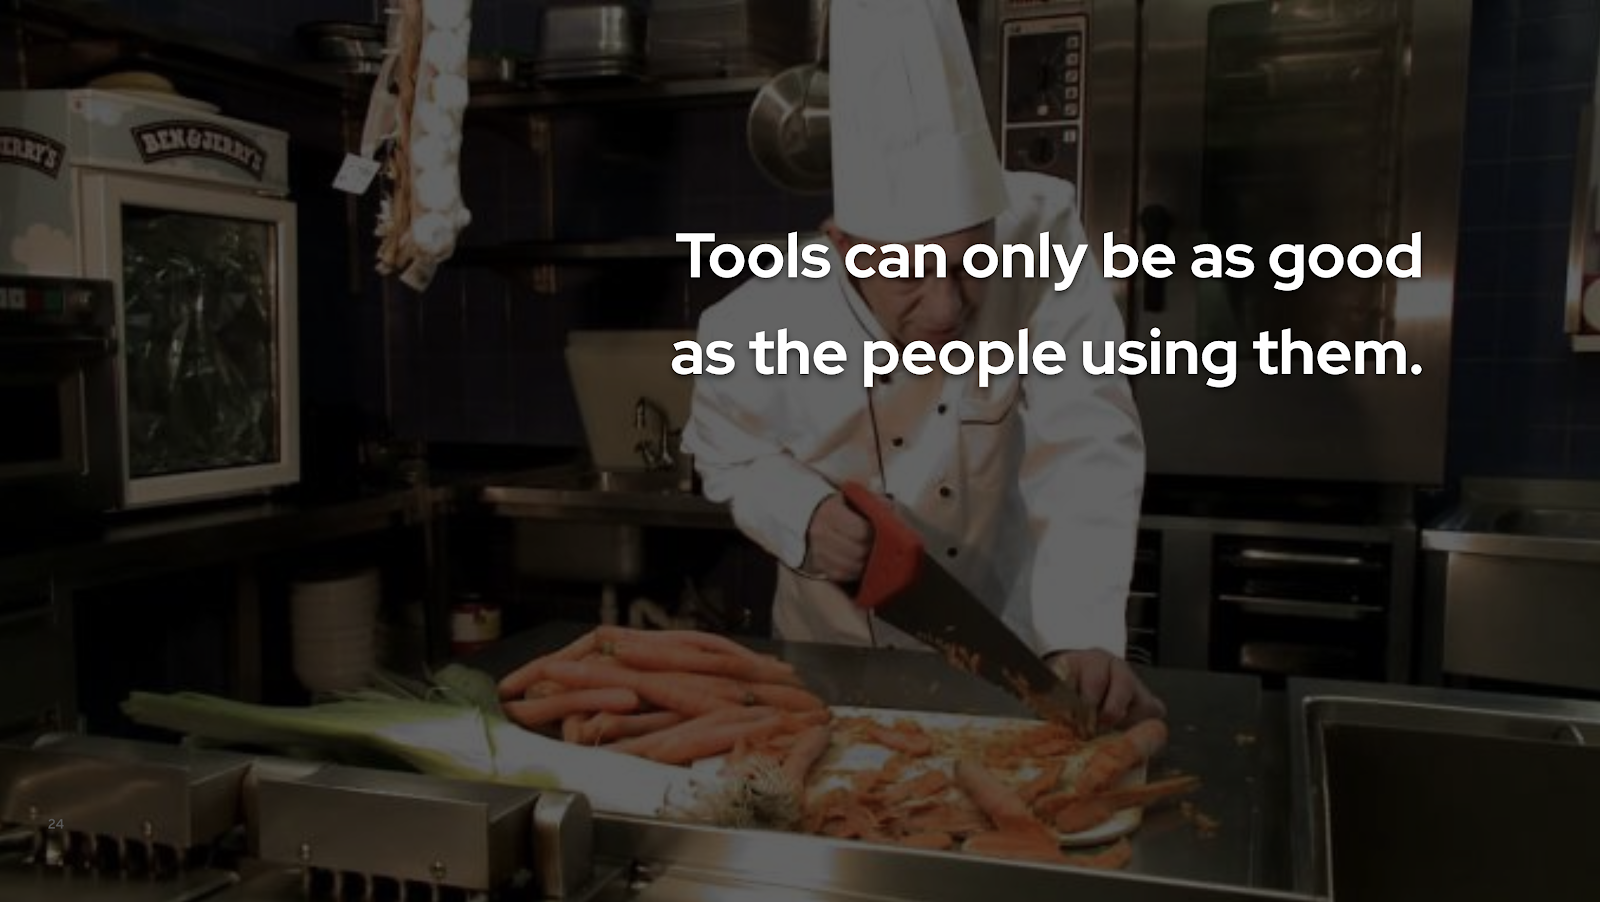 Tools can only be as good as the people using them.